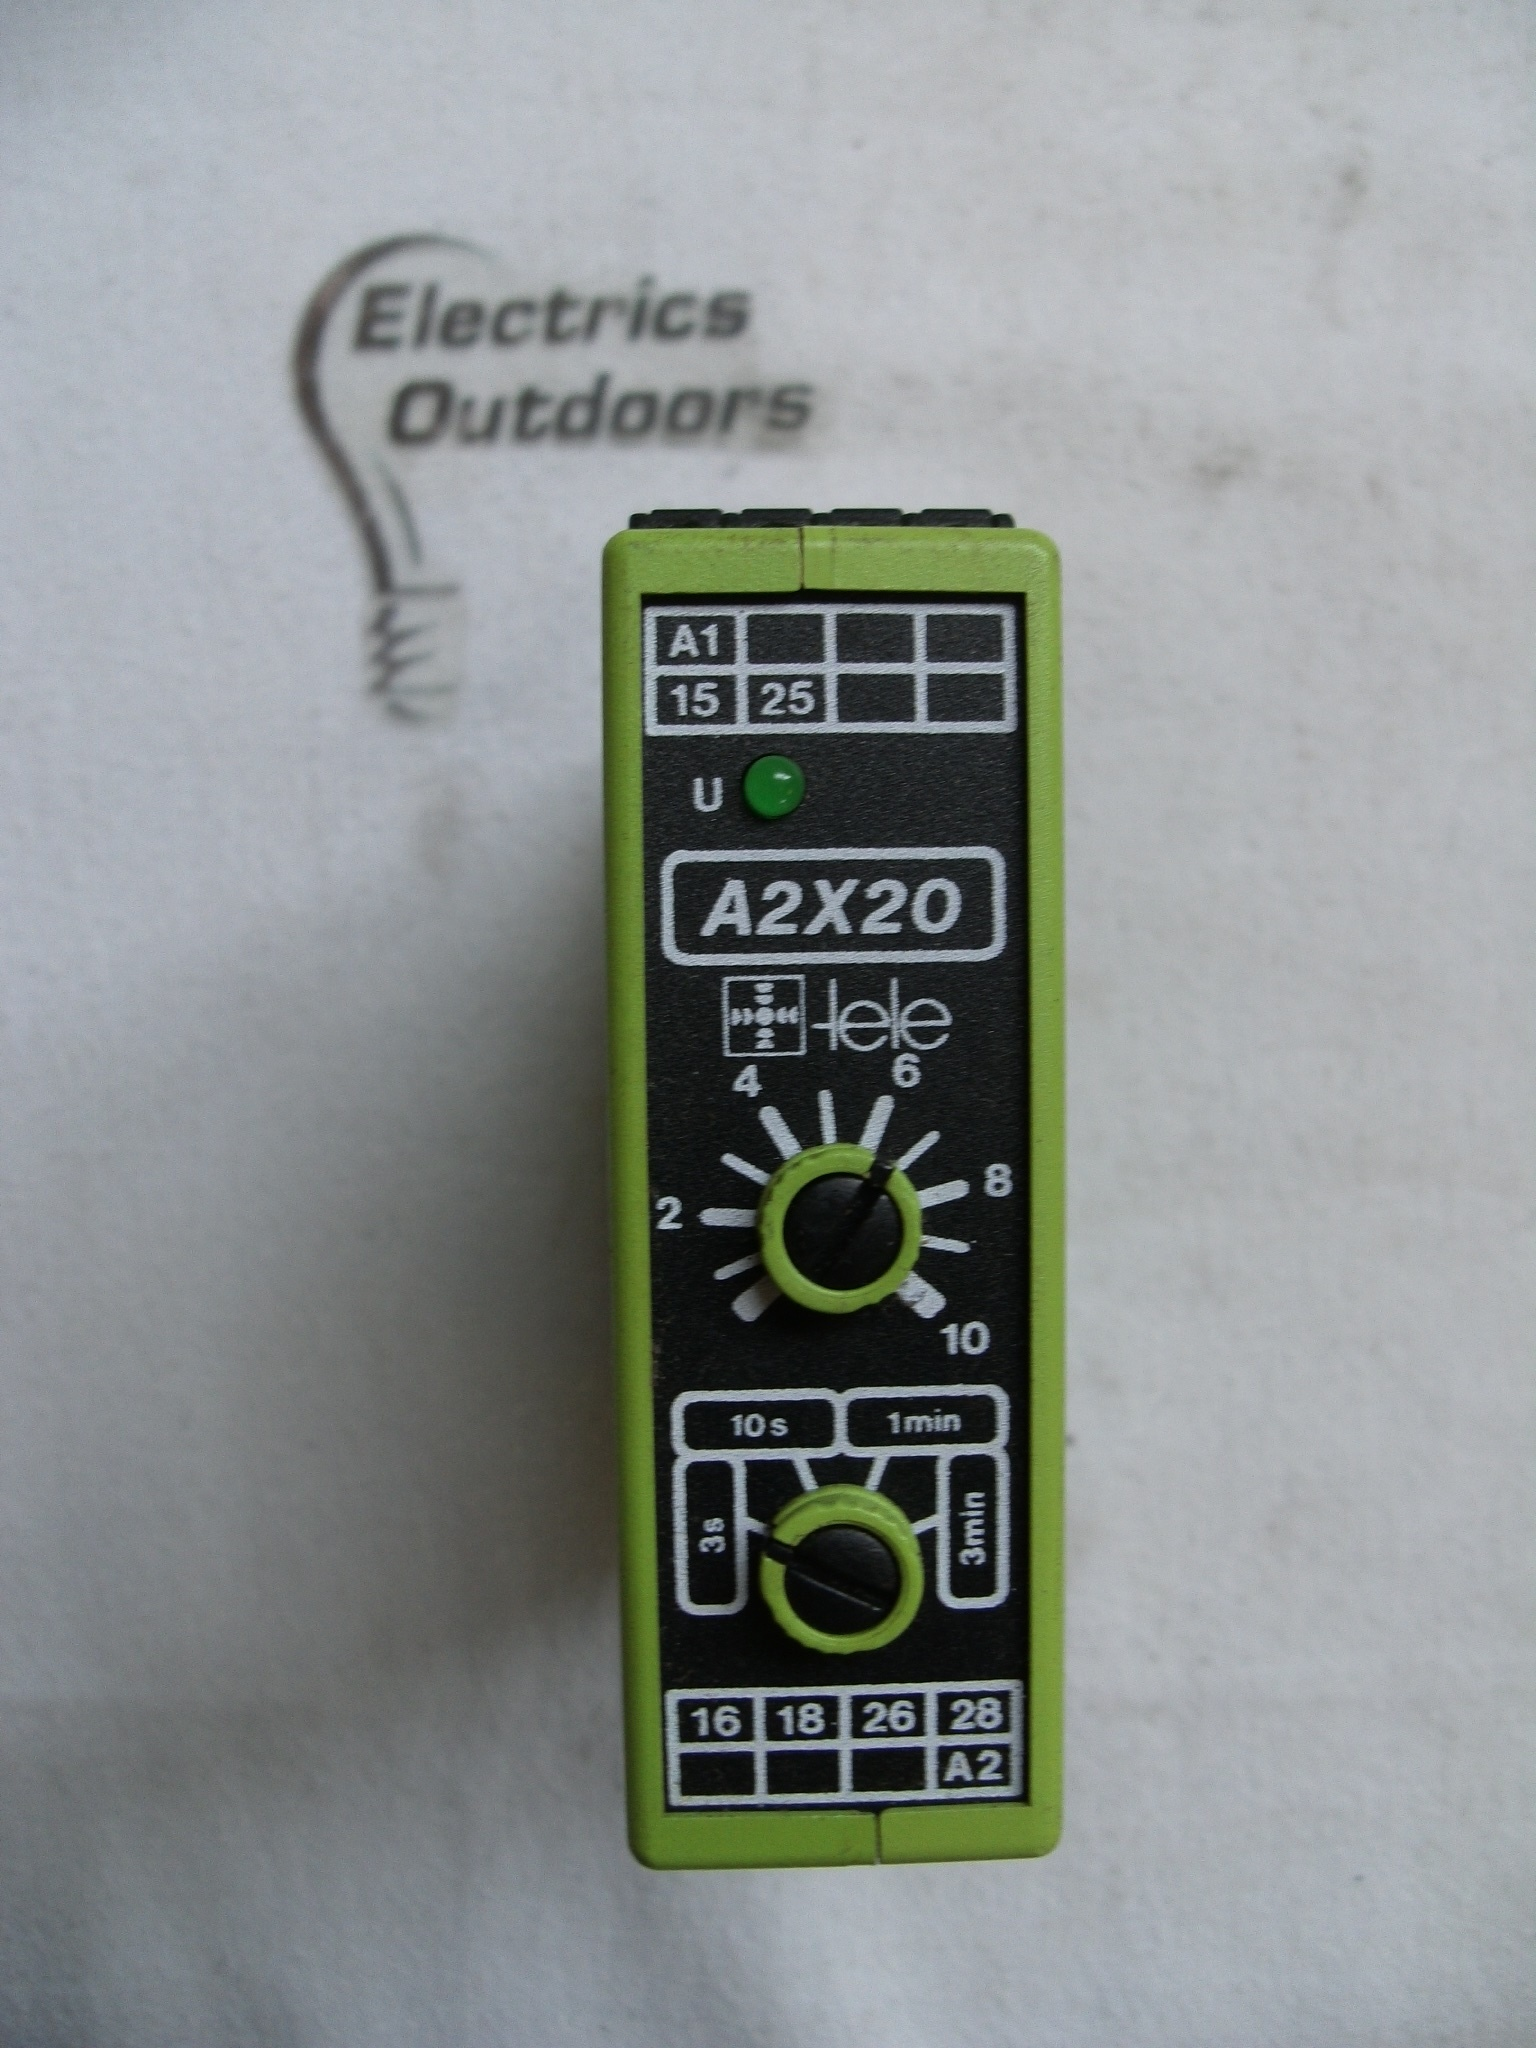 Tele Timer 3 Seconds Mins A2x20 Tr2 240v Other Circuit Breaker With 4827 Item Condition Used Sorry We Currently Have No Stock